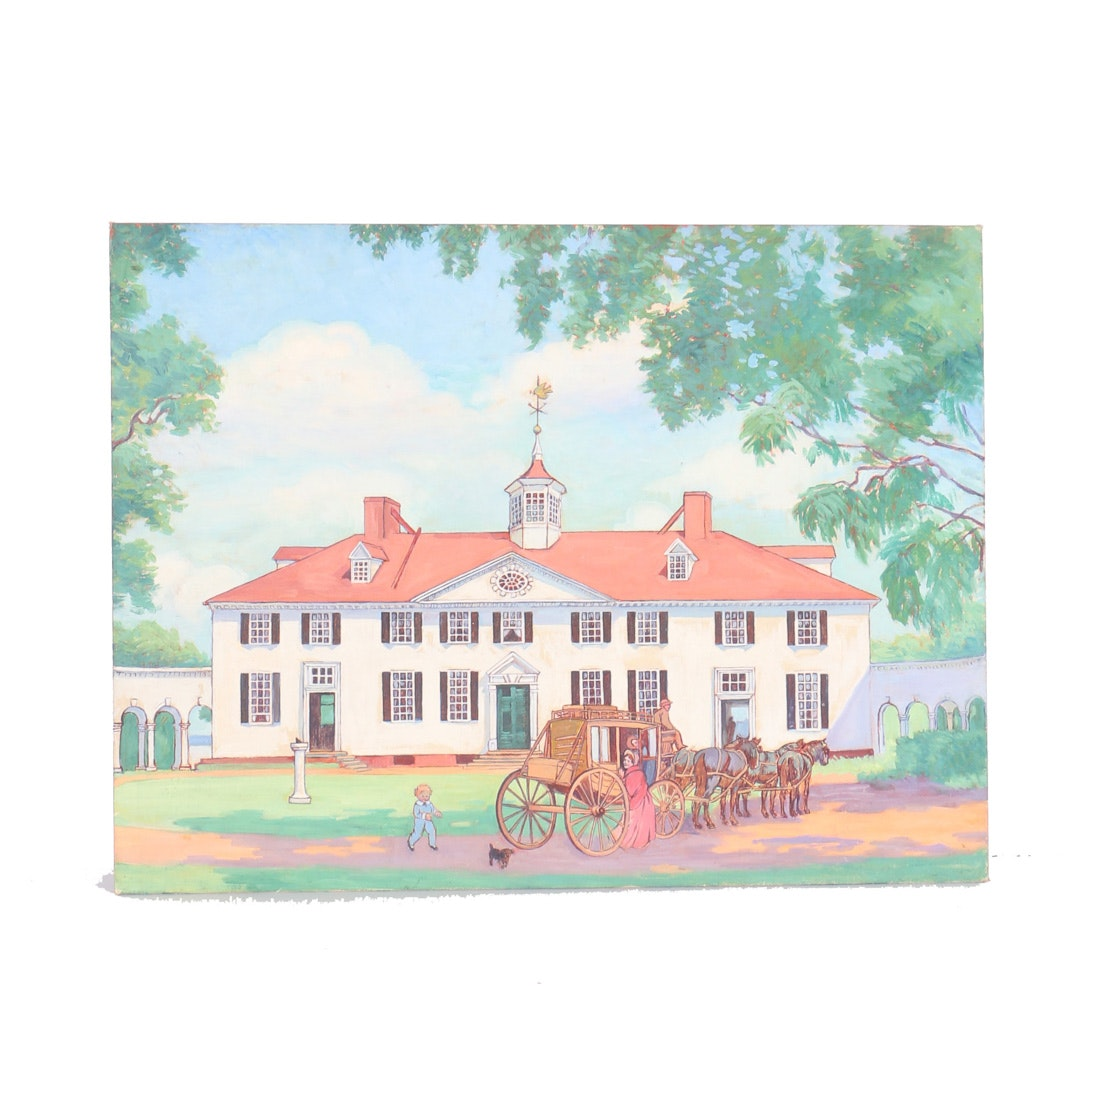 Oil Painting on Canvas Board of a Colonial Home